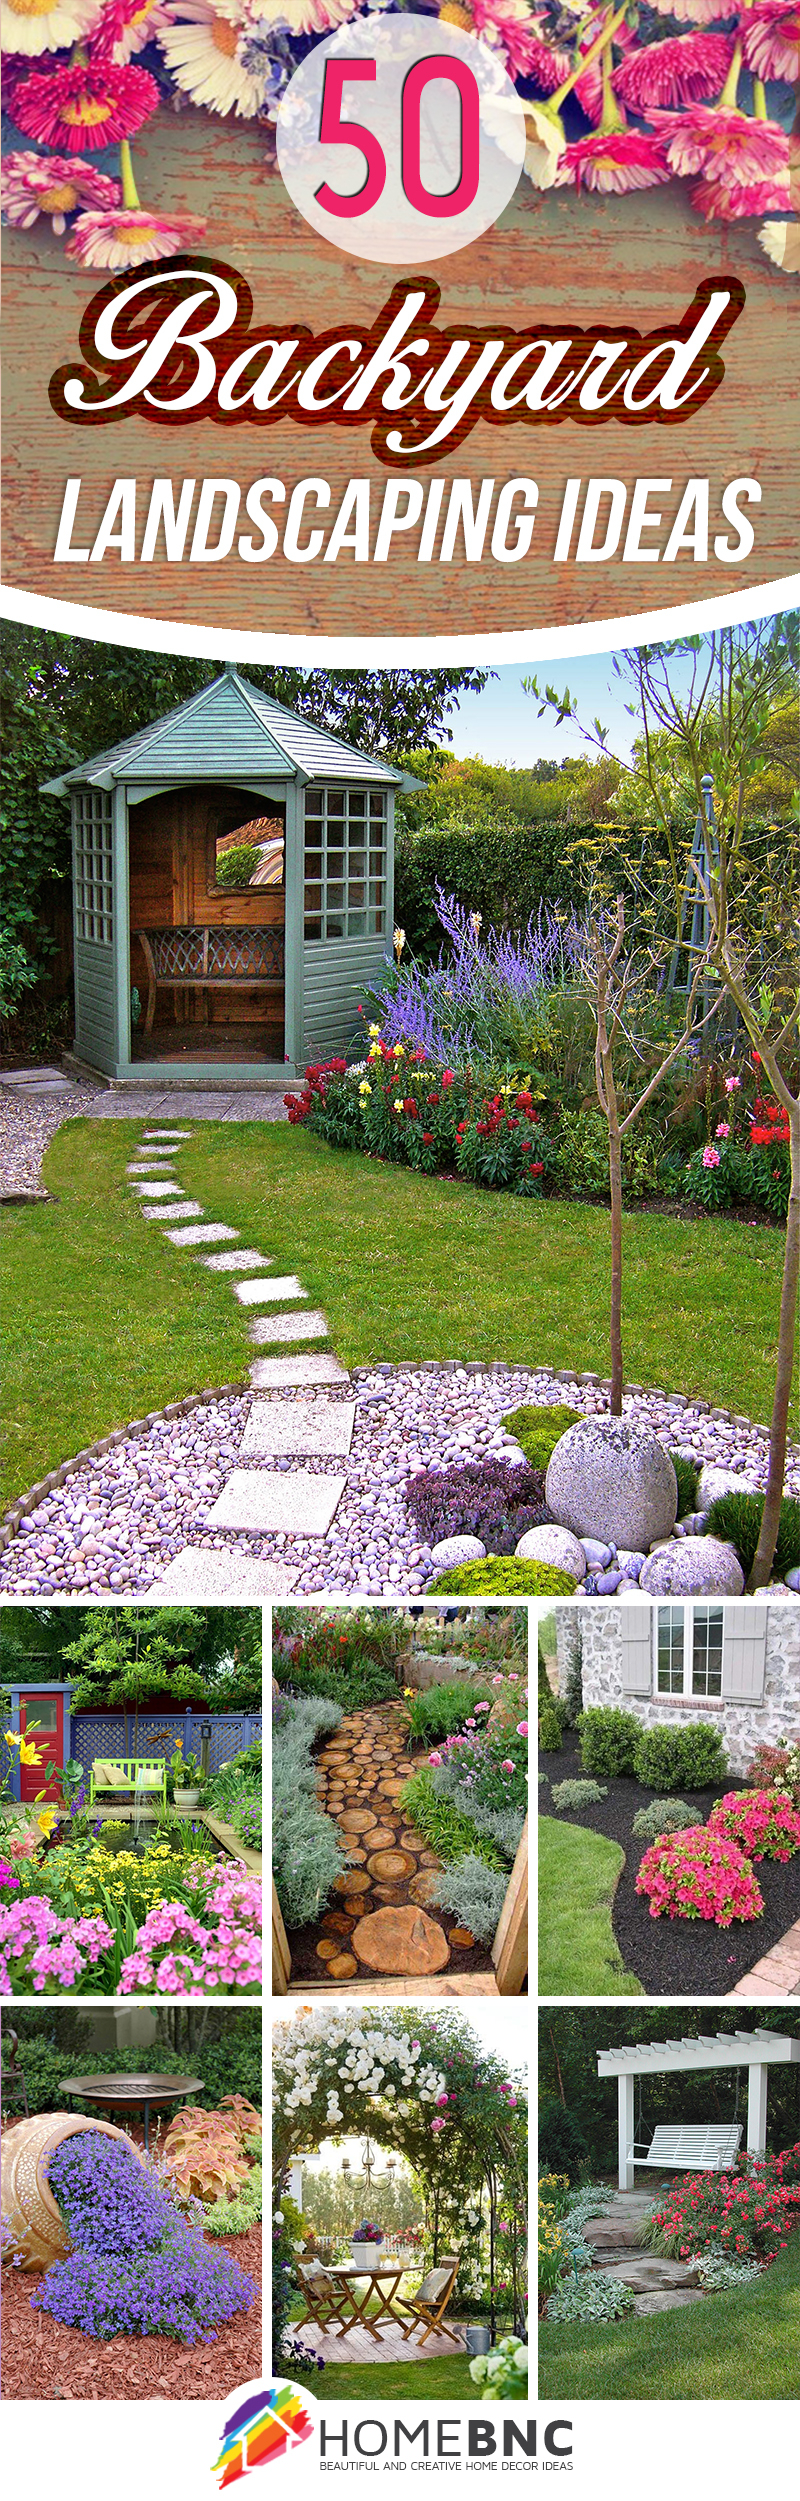 50 Best Backyard Landscaping Ideas And Designs In 2019 pertaining to How To Design Backyard Landscaping